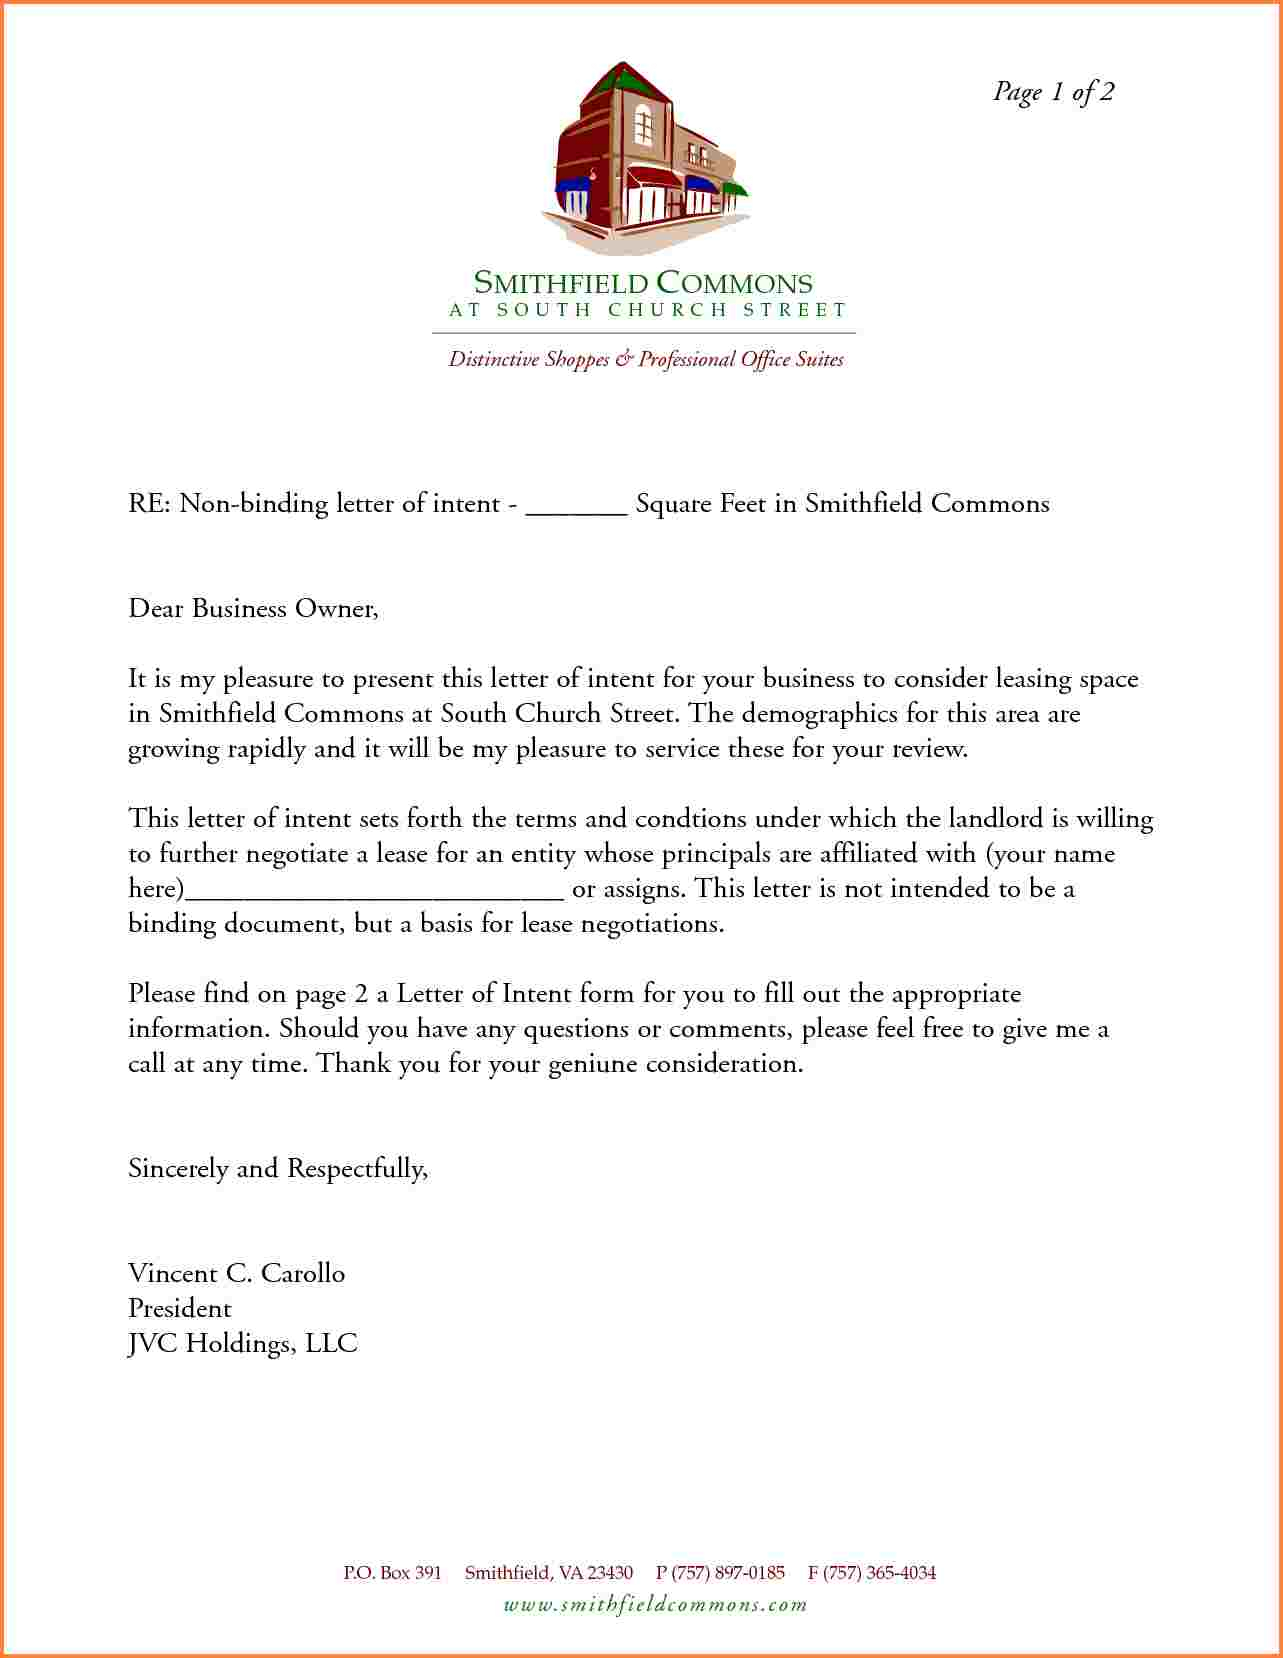 Letter Of Intent to Lease Commercial Property Template - Mercial Lease Letter Intent Example Sample to Restaurant Space